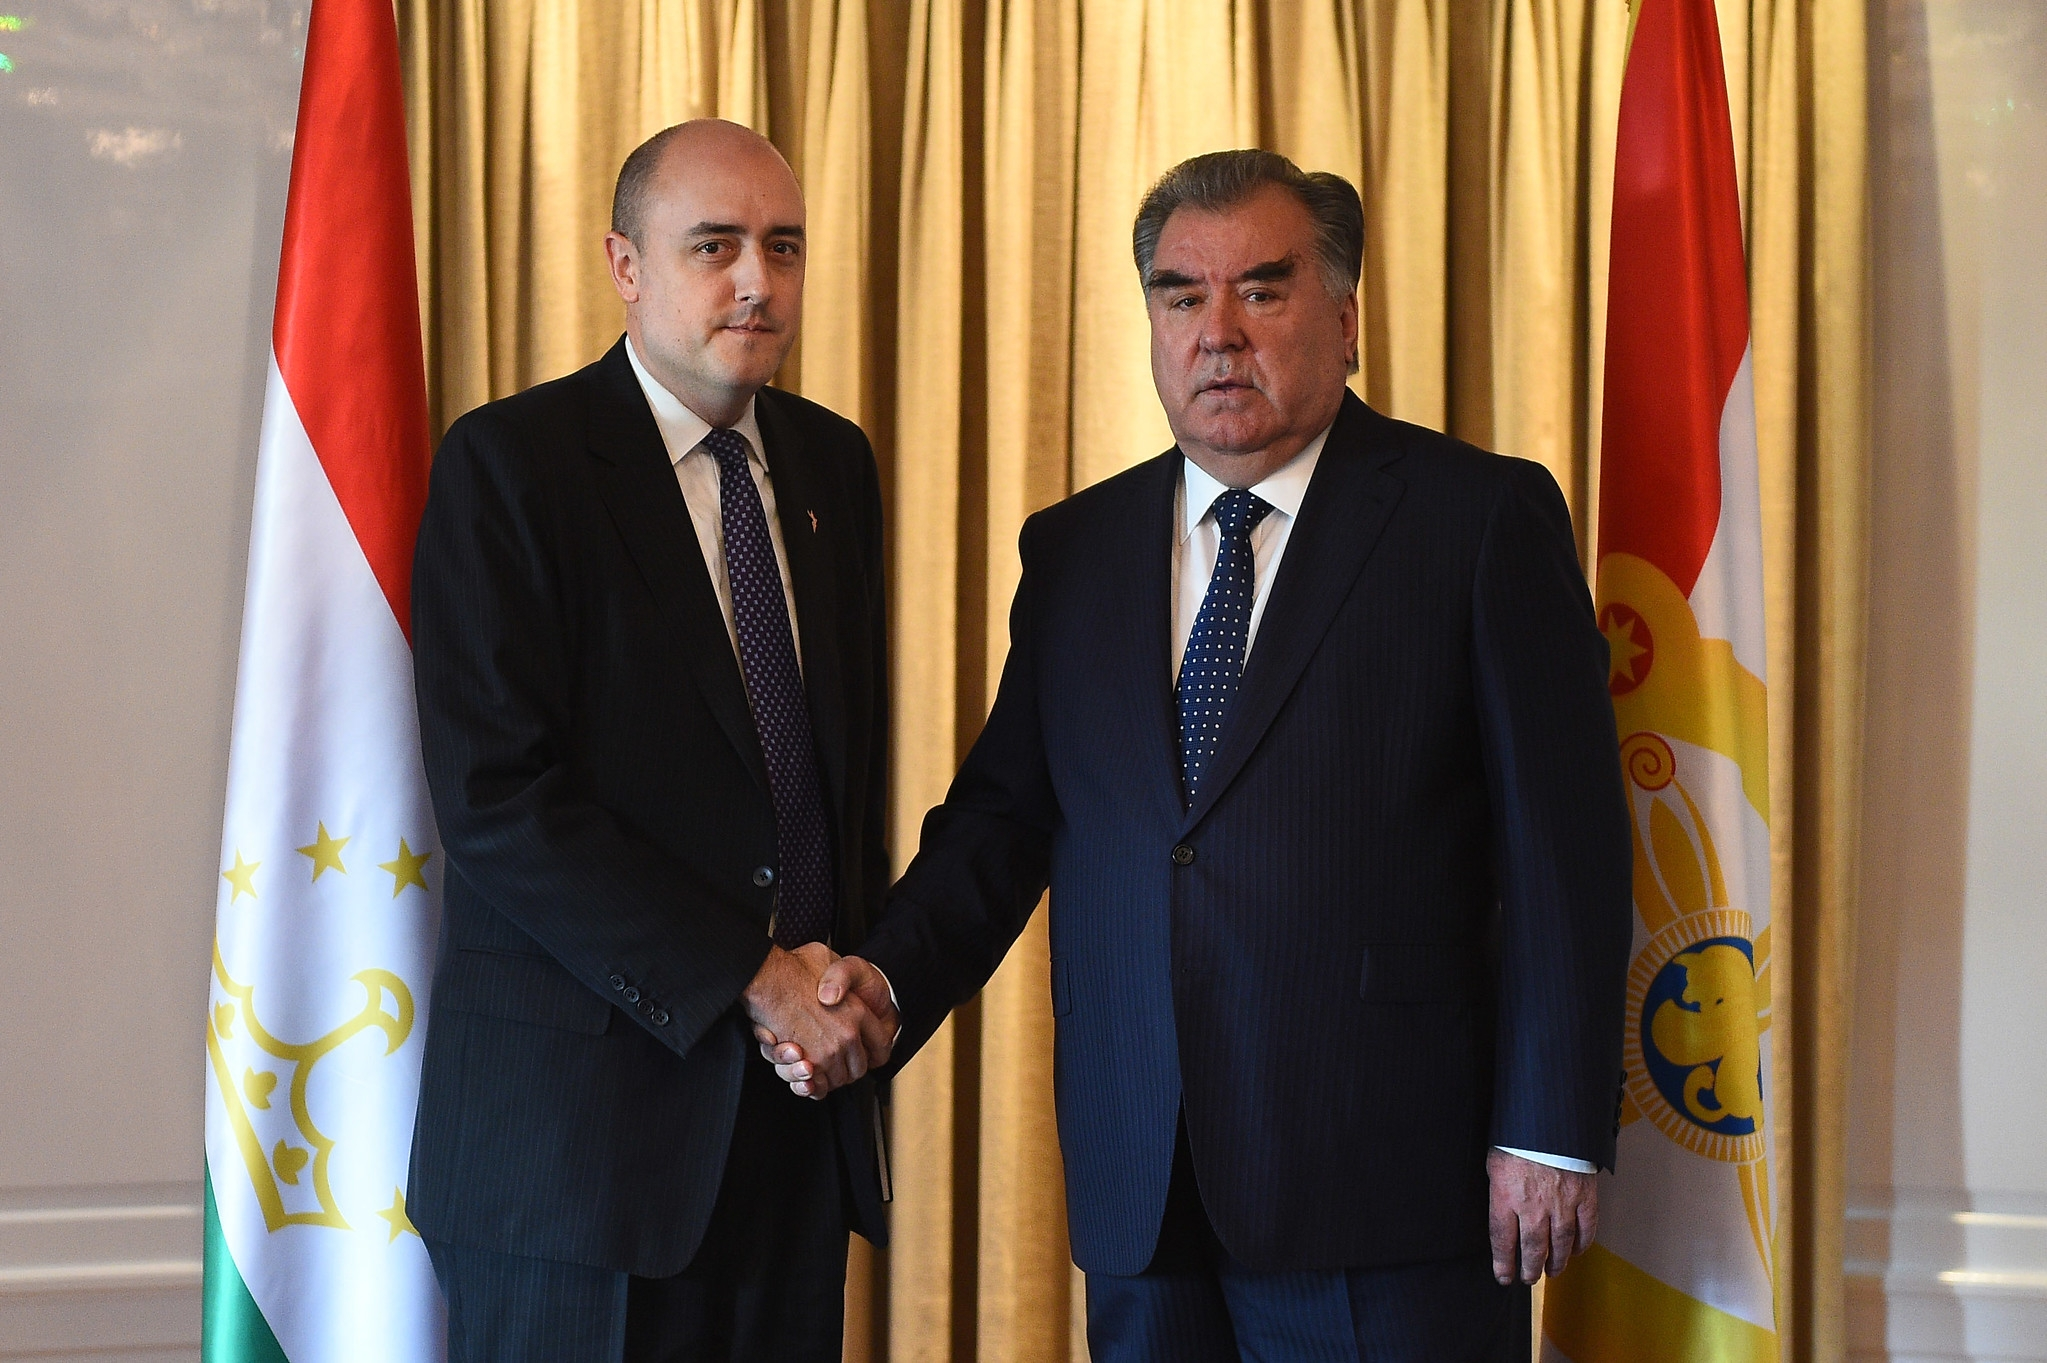 RFE/RL President Jamie Fly meeting Tajik President Emomali Rahmon in November. (Photo: Tajik presidential administration)